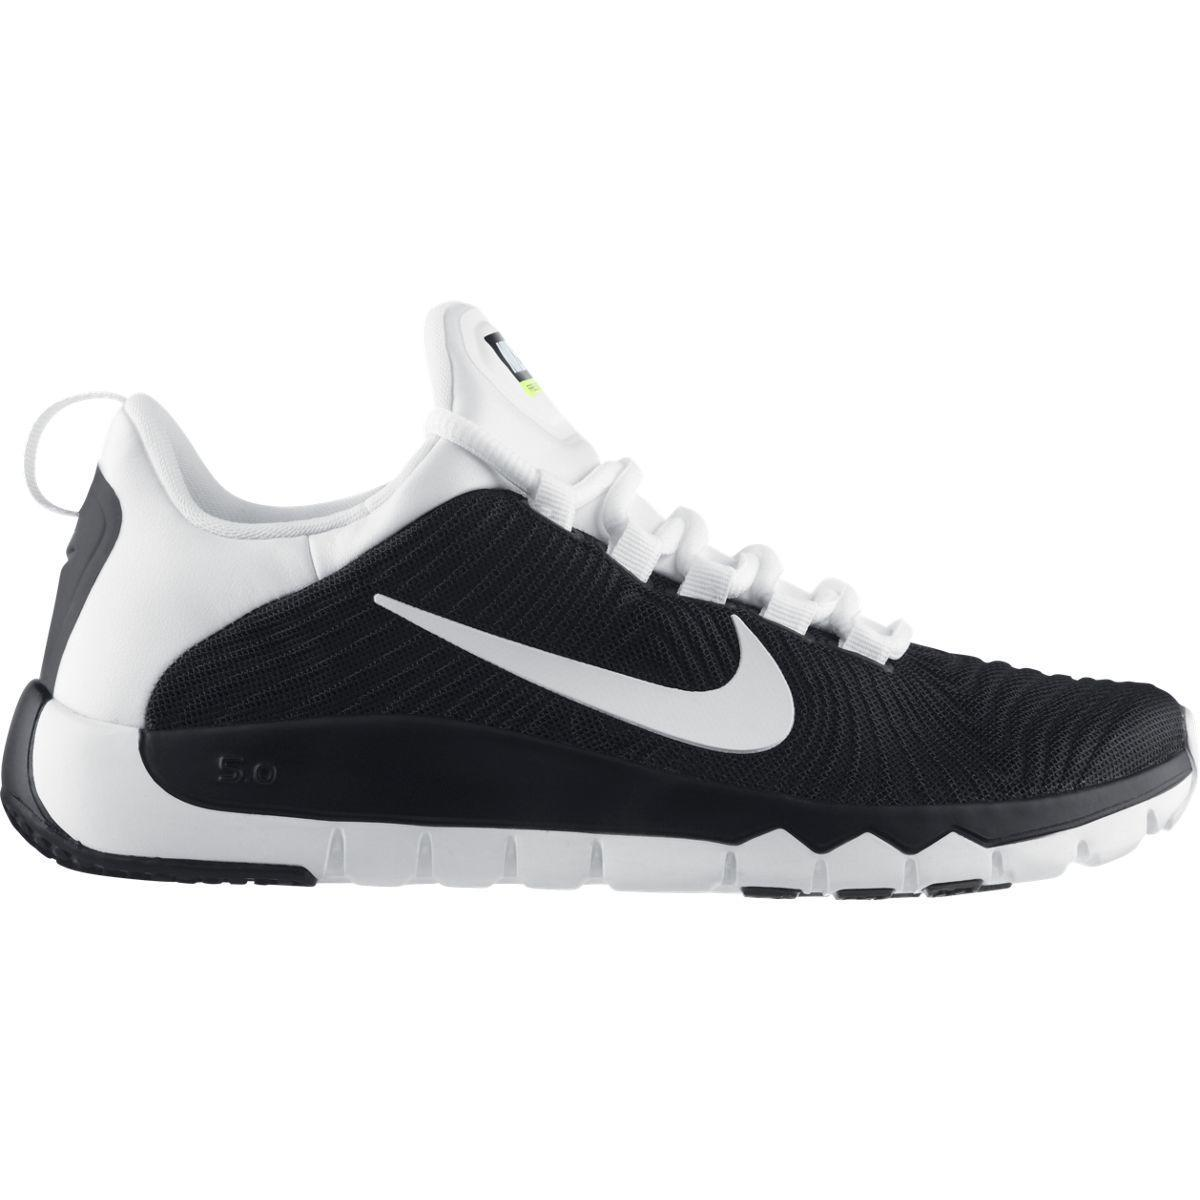 Nike Mens Free Trainer 5.0 Training Shoes - Black White - Tennisnuts.com 25ee07379